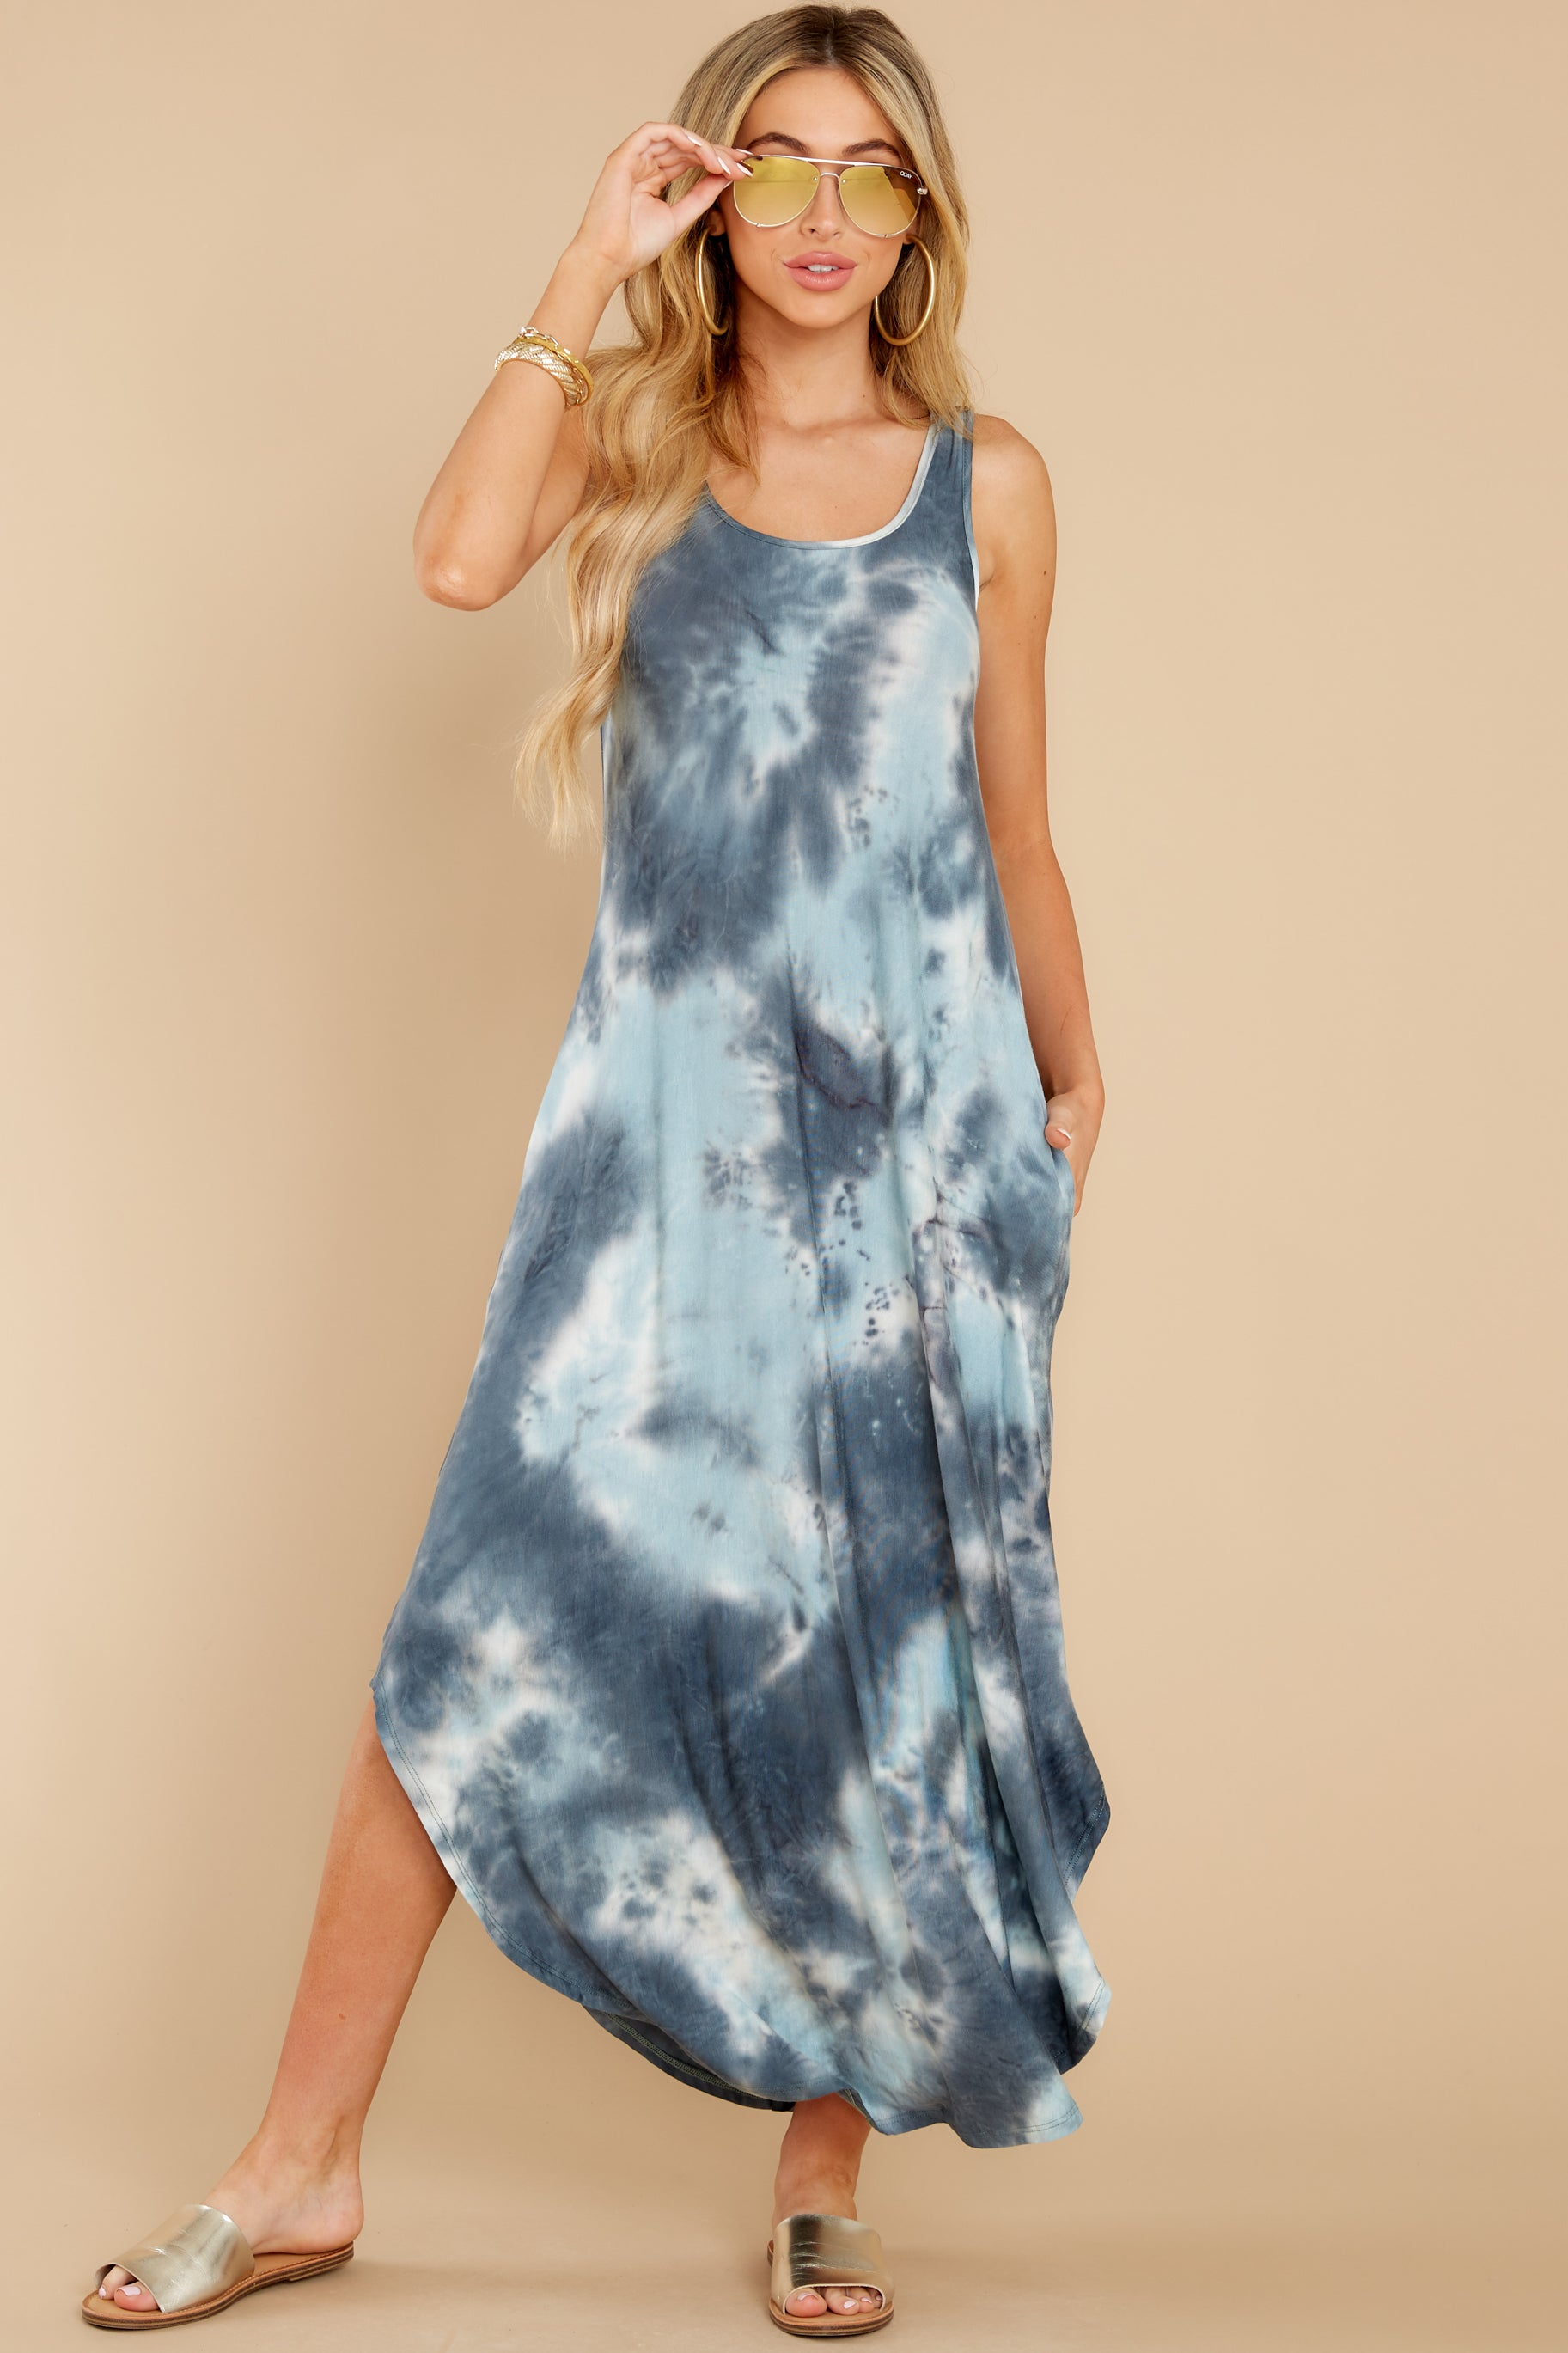 6 Easily Swayed Blue Tie Dye Maxi Dress at reddress.com